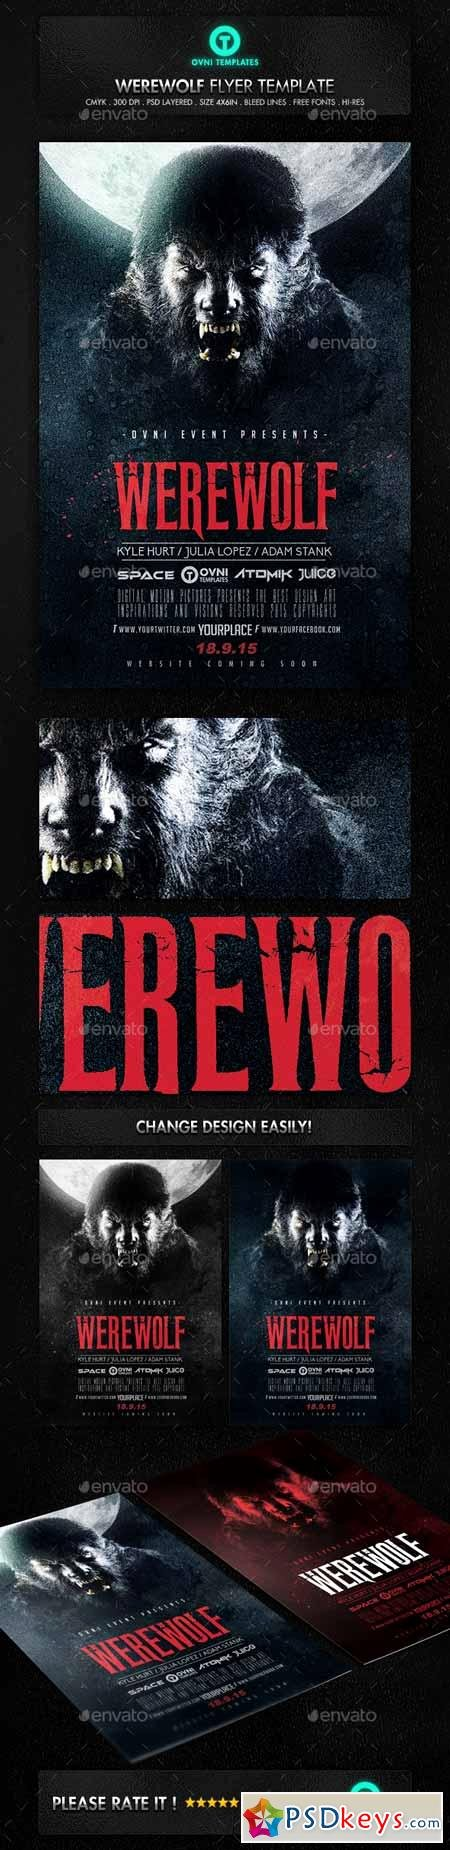 Horror Movie Poster Template Luxury Werewolf Dark Horror Movie Flyer Poster Template Free